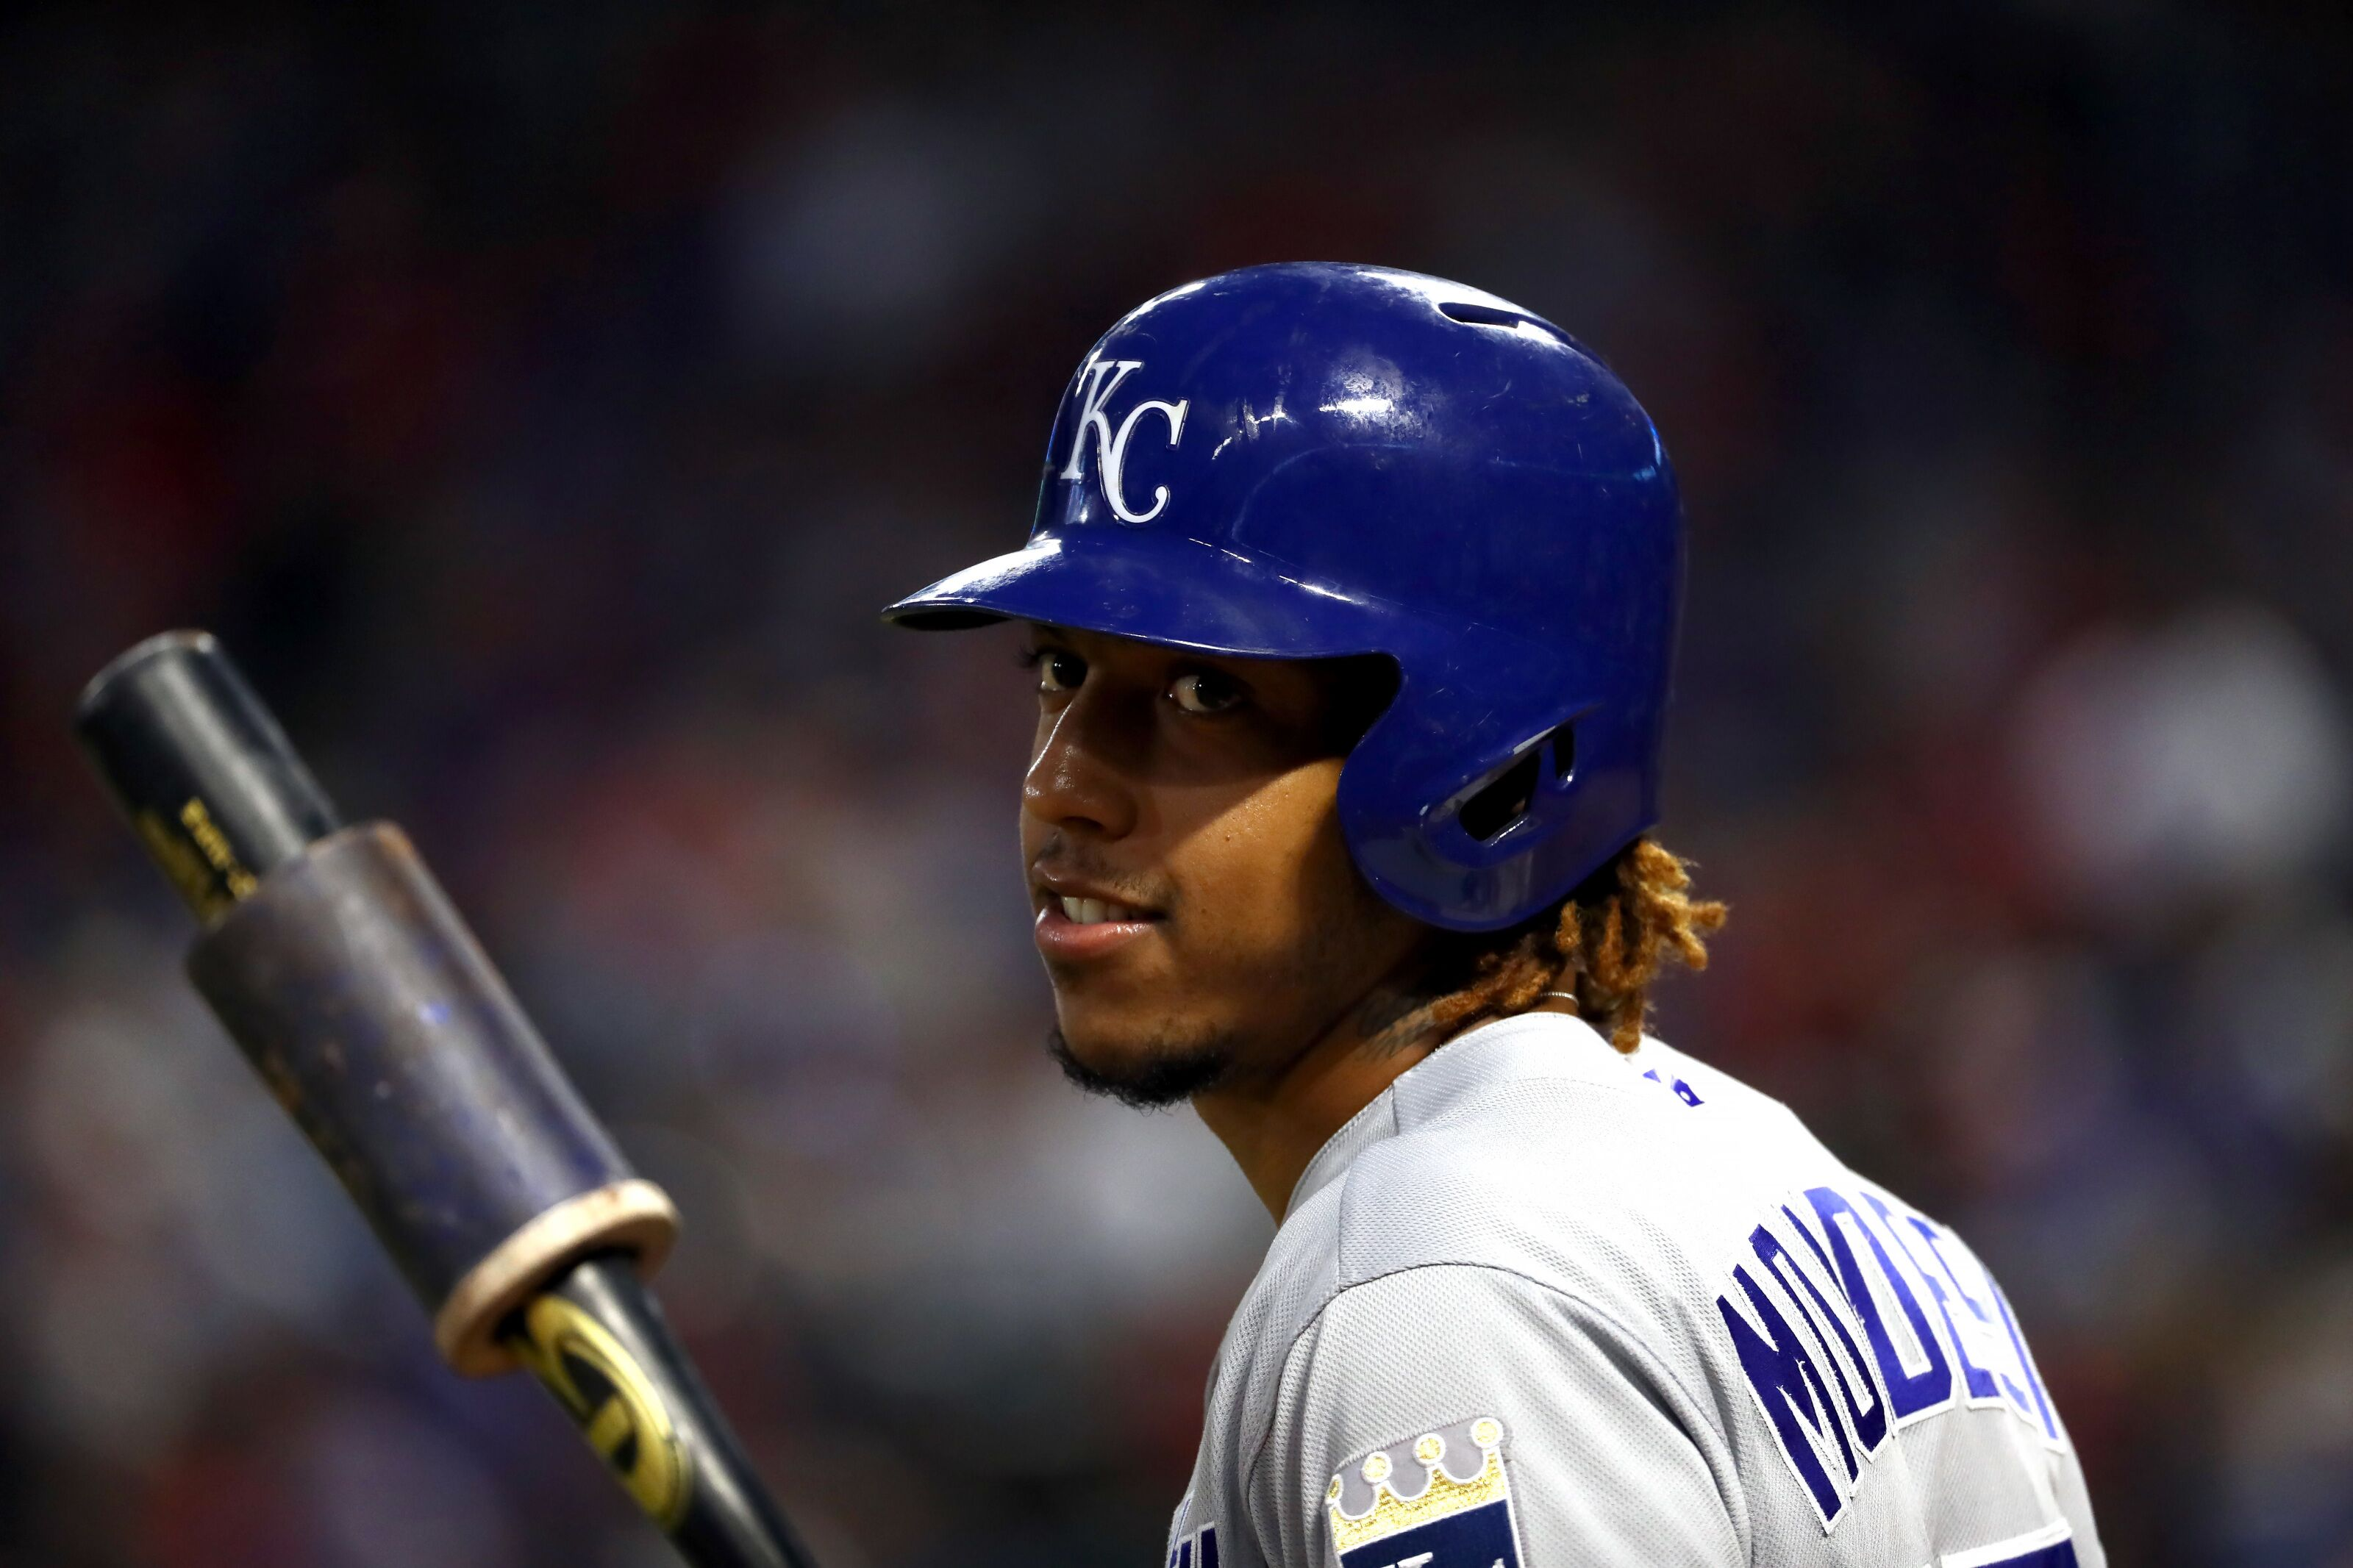 Kansas City Royals: Mondesi collects 40th steal in loss to Twins